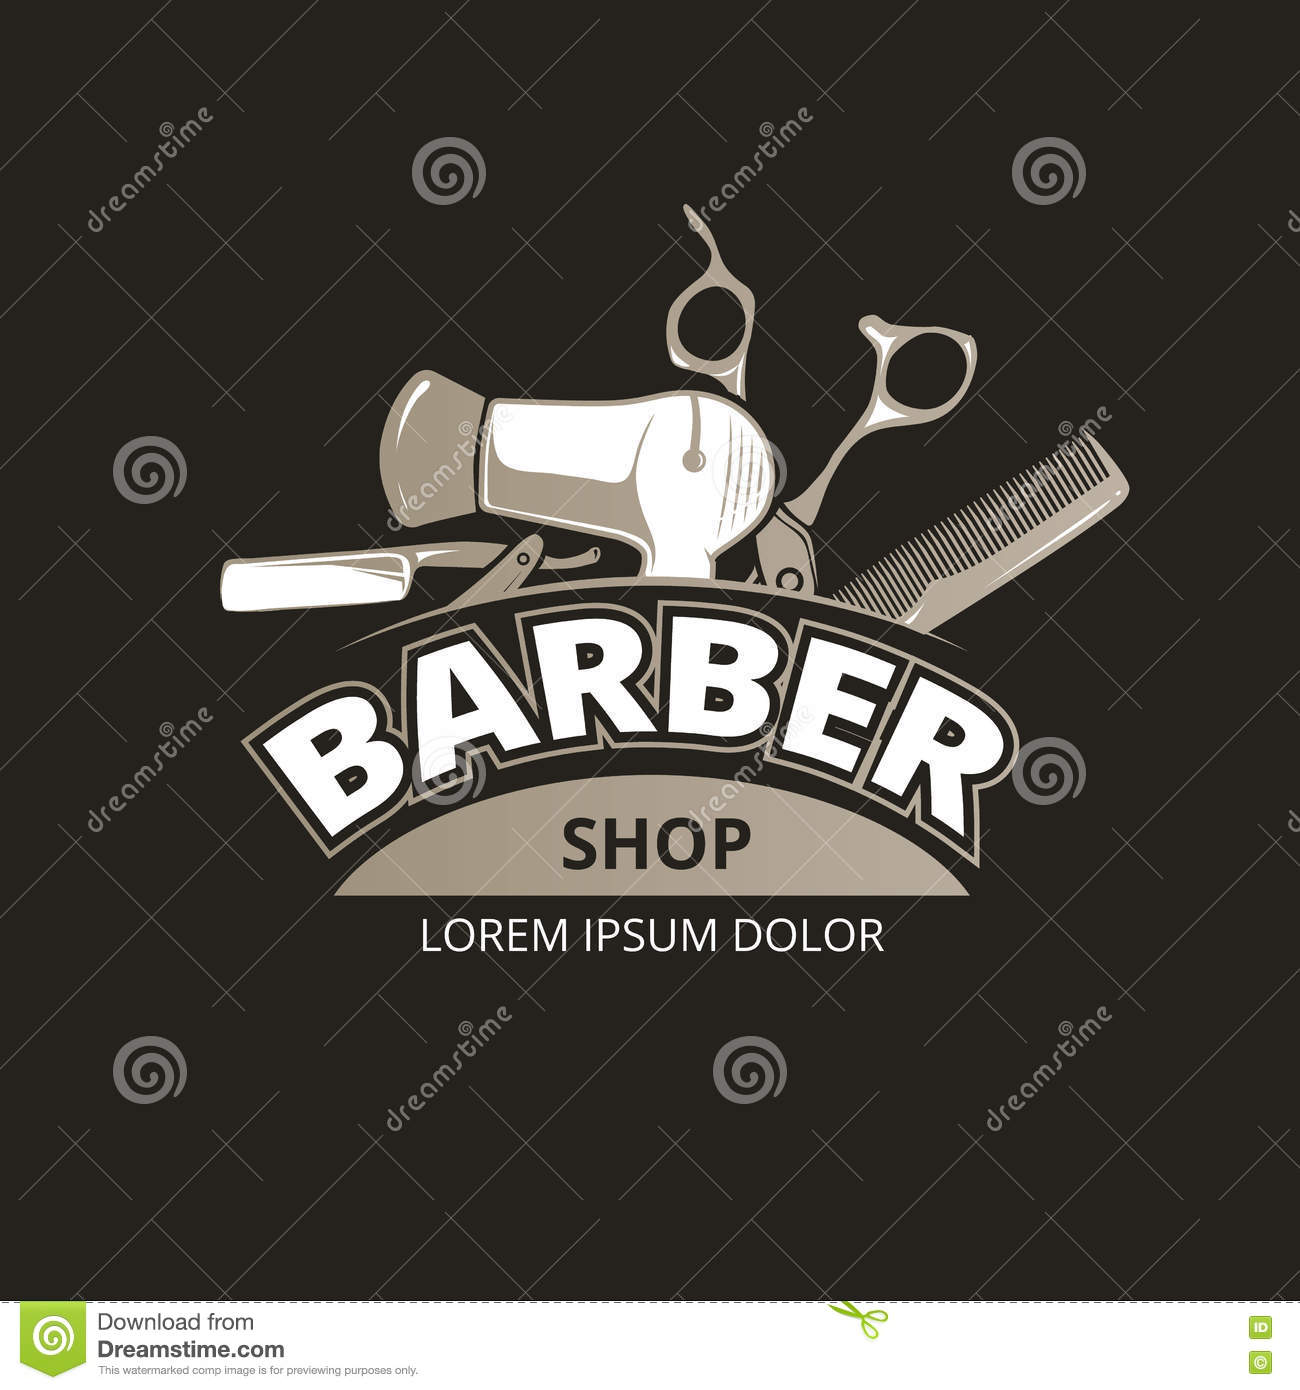 barber background - photo #23